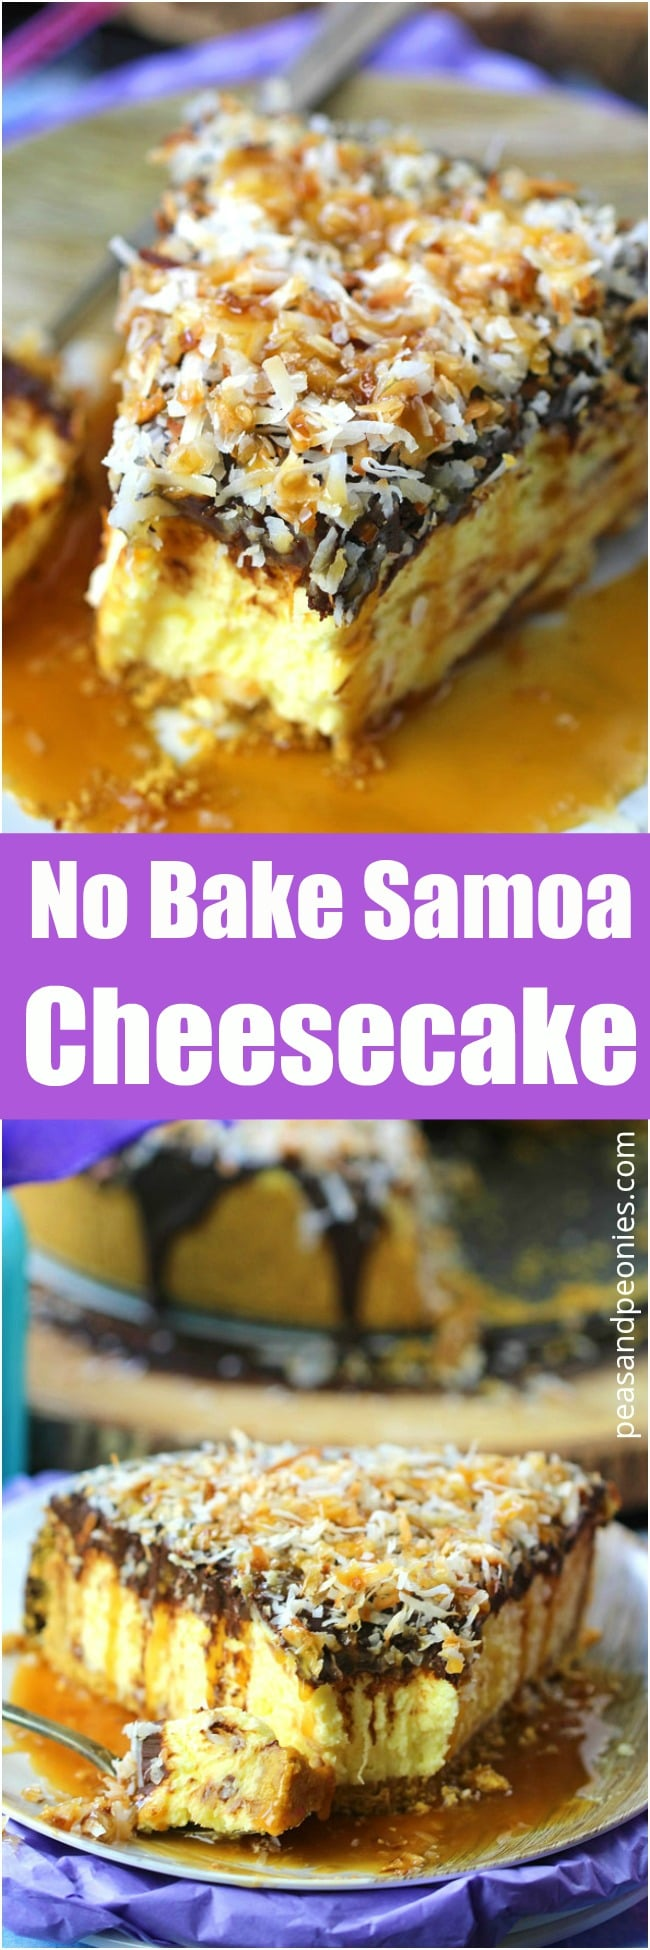 The best and creamiest No Bake Samoa Cheesecake is indulgent and delicious. Topped with chocolate ganache, lots of toasted coconut and finished with caramel sauce.